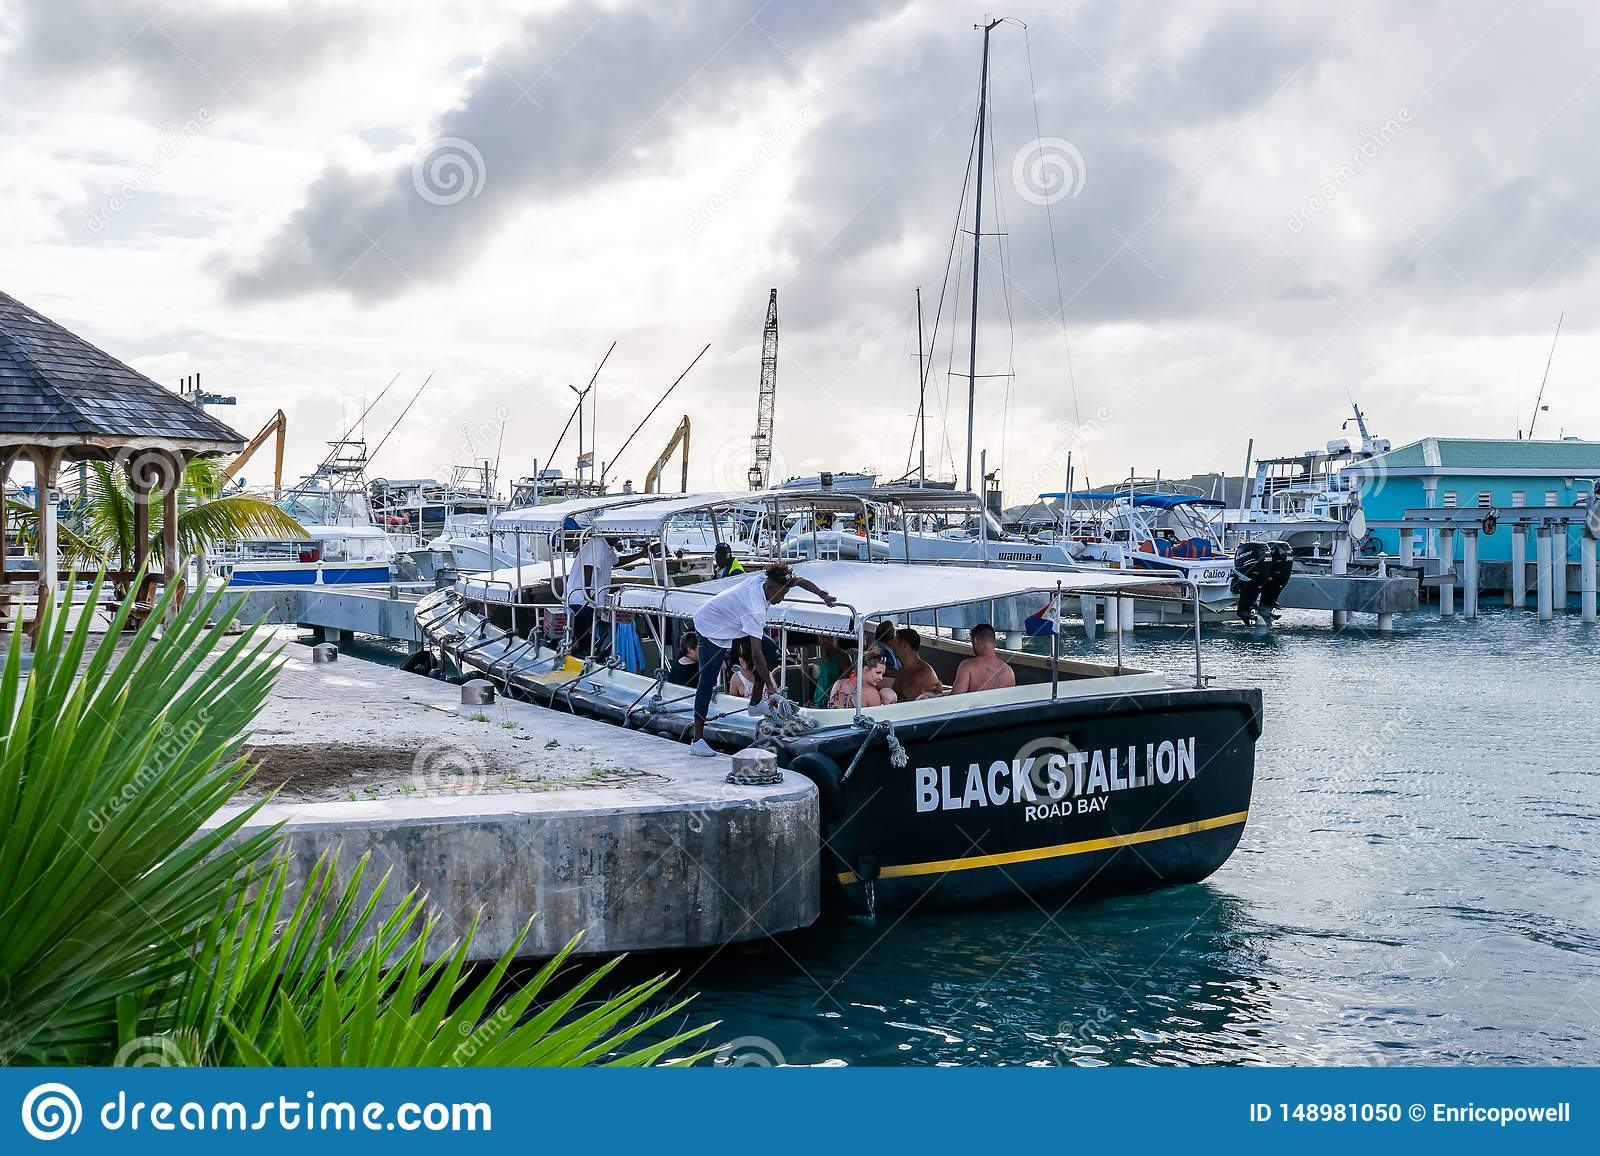 Caucasian tourists on Black Stallion Road Bay tour boat in boatyard Crew unties ropes from marine bollards for sailing